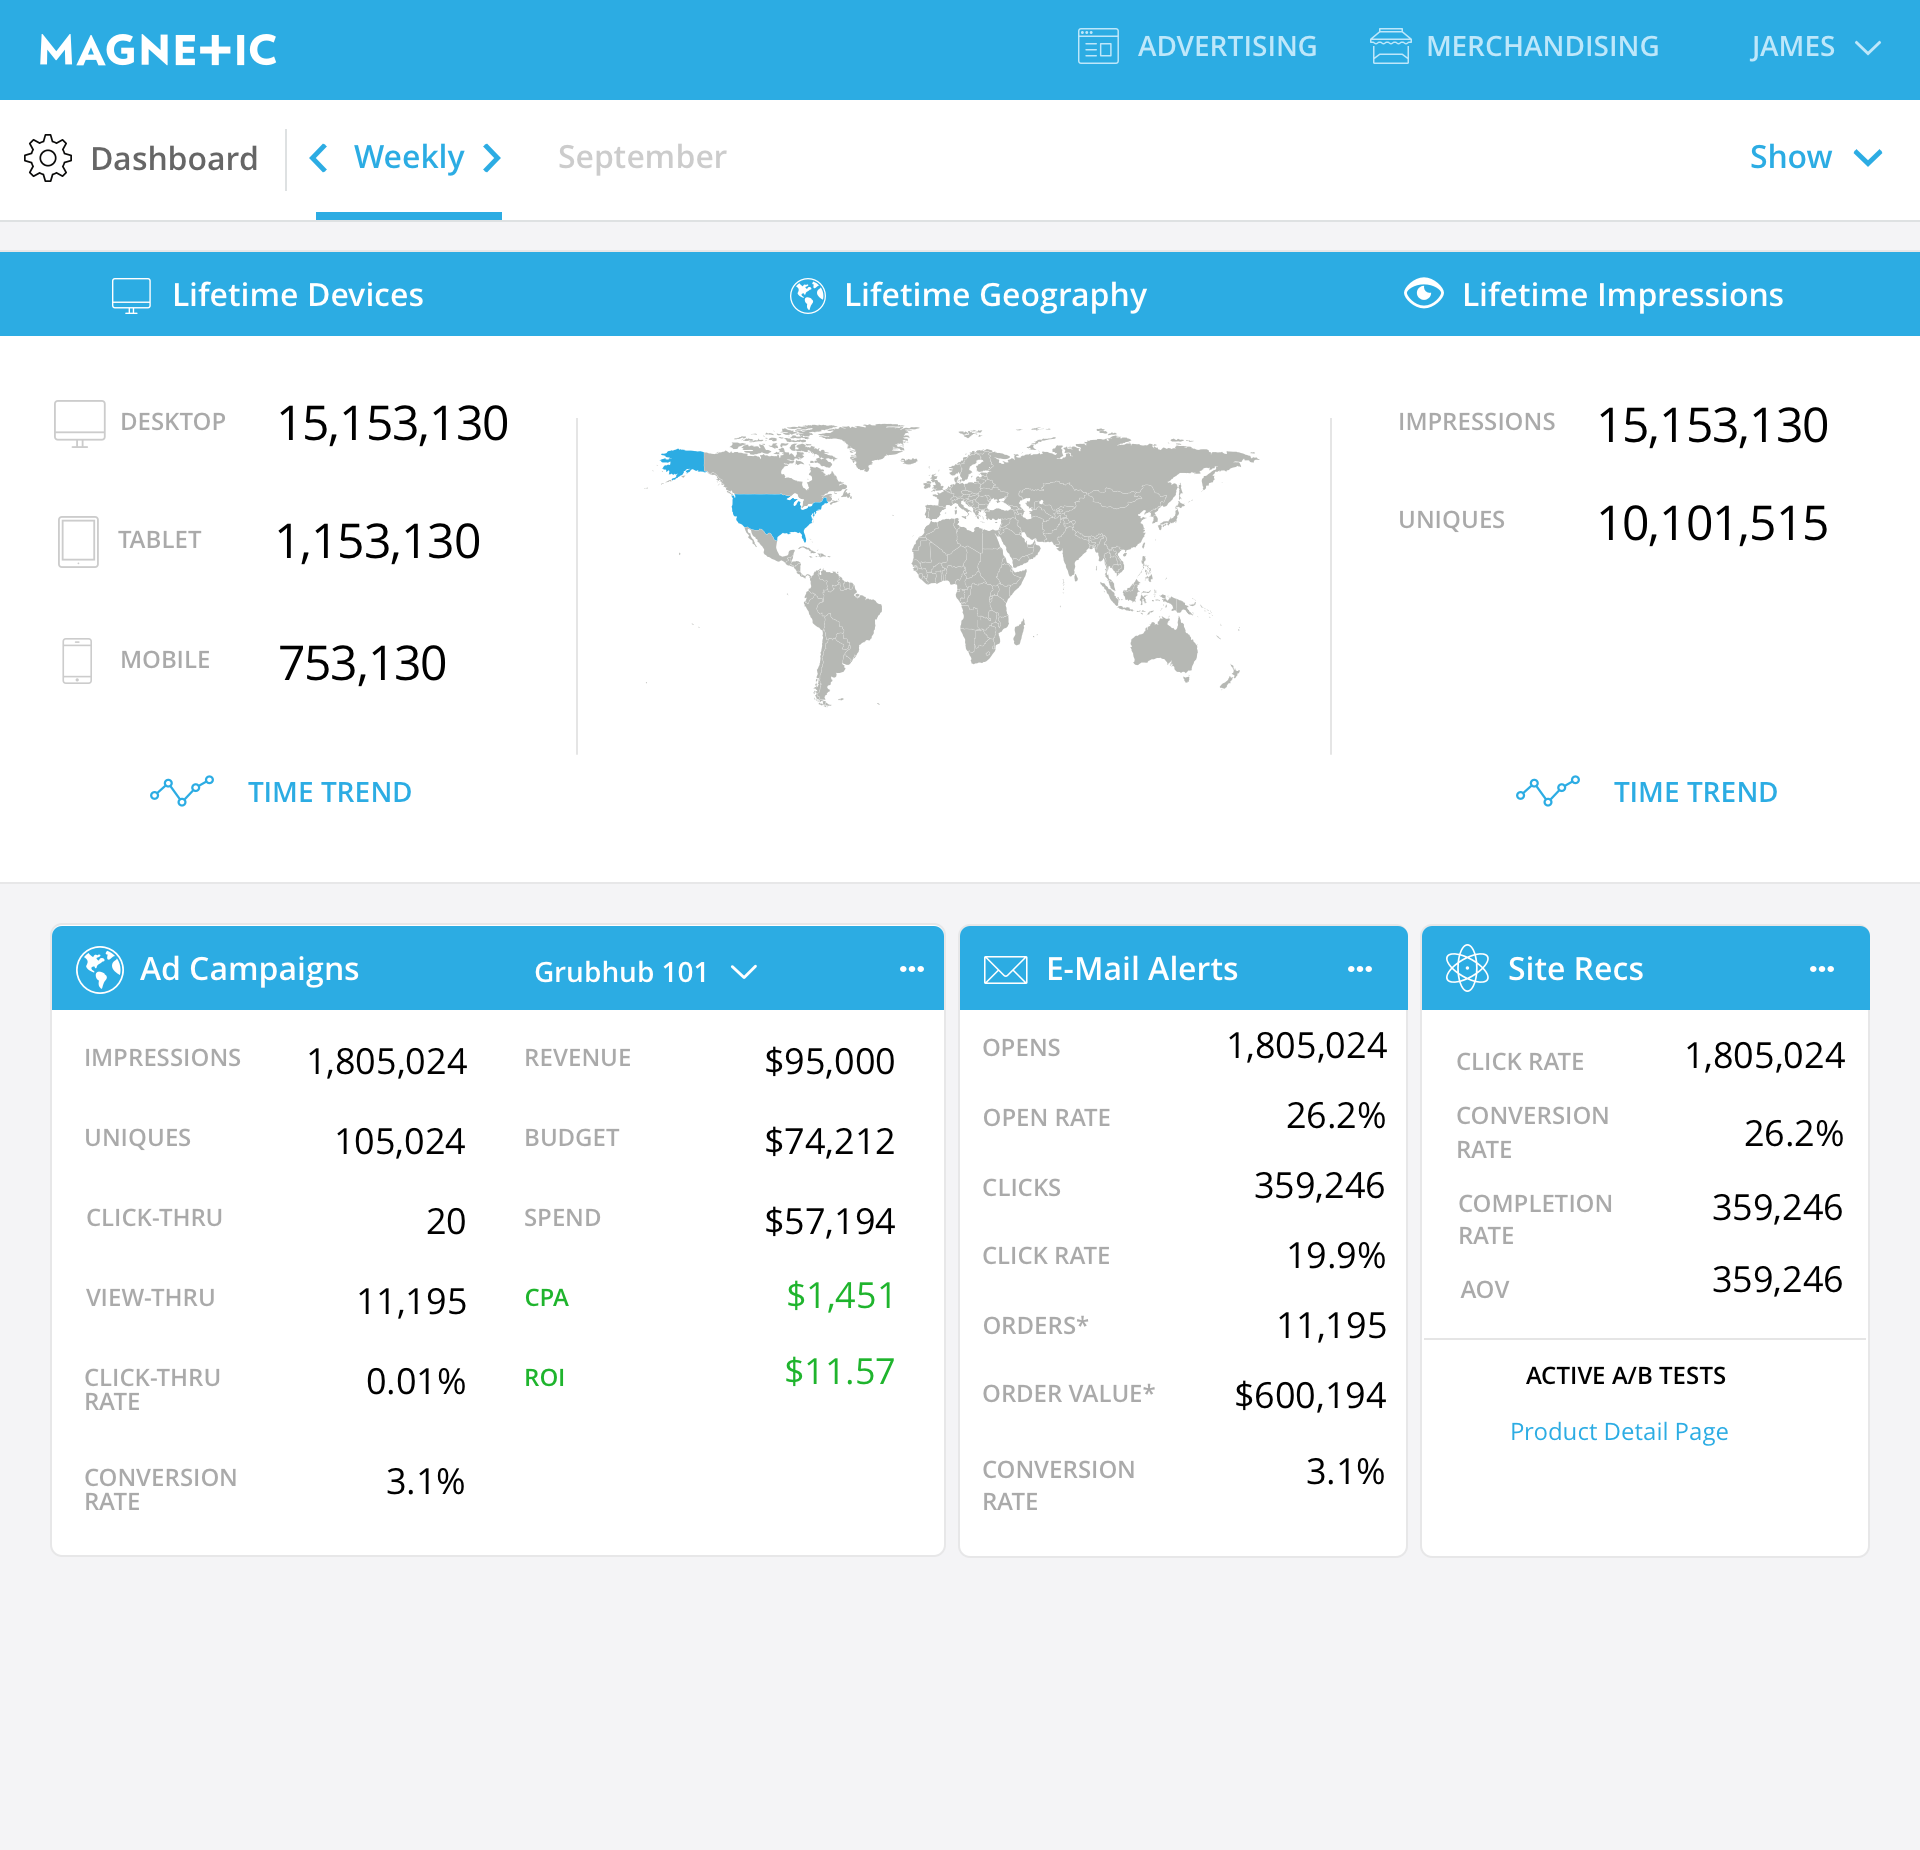 Dashboard (Data) (Weekly).png